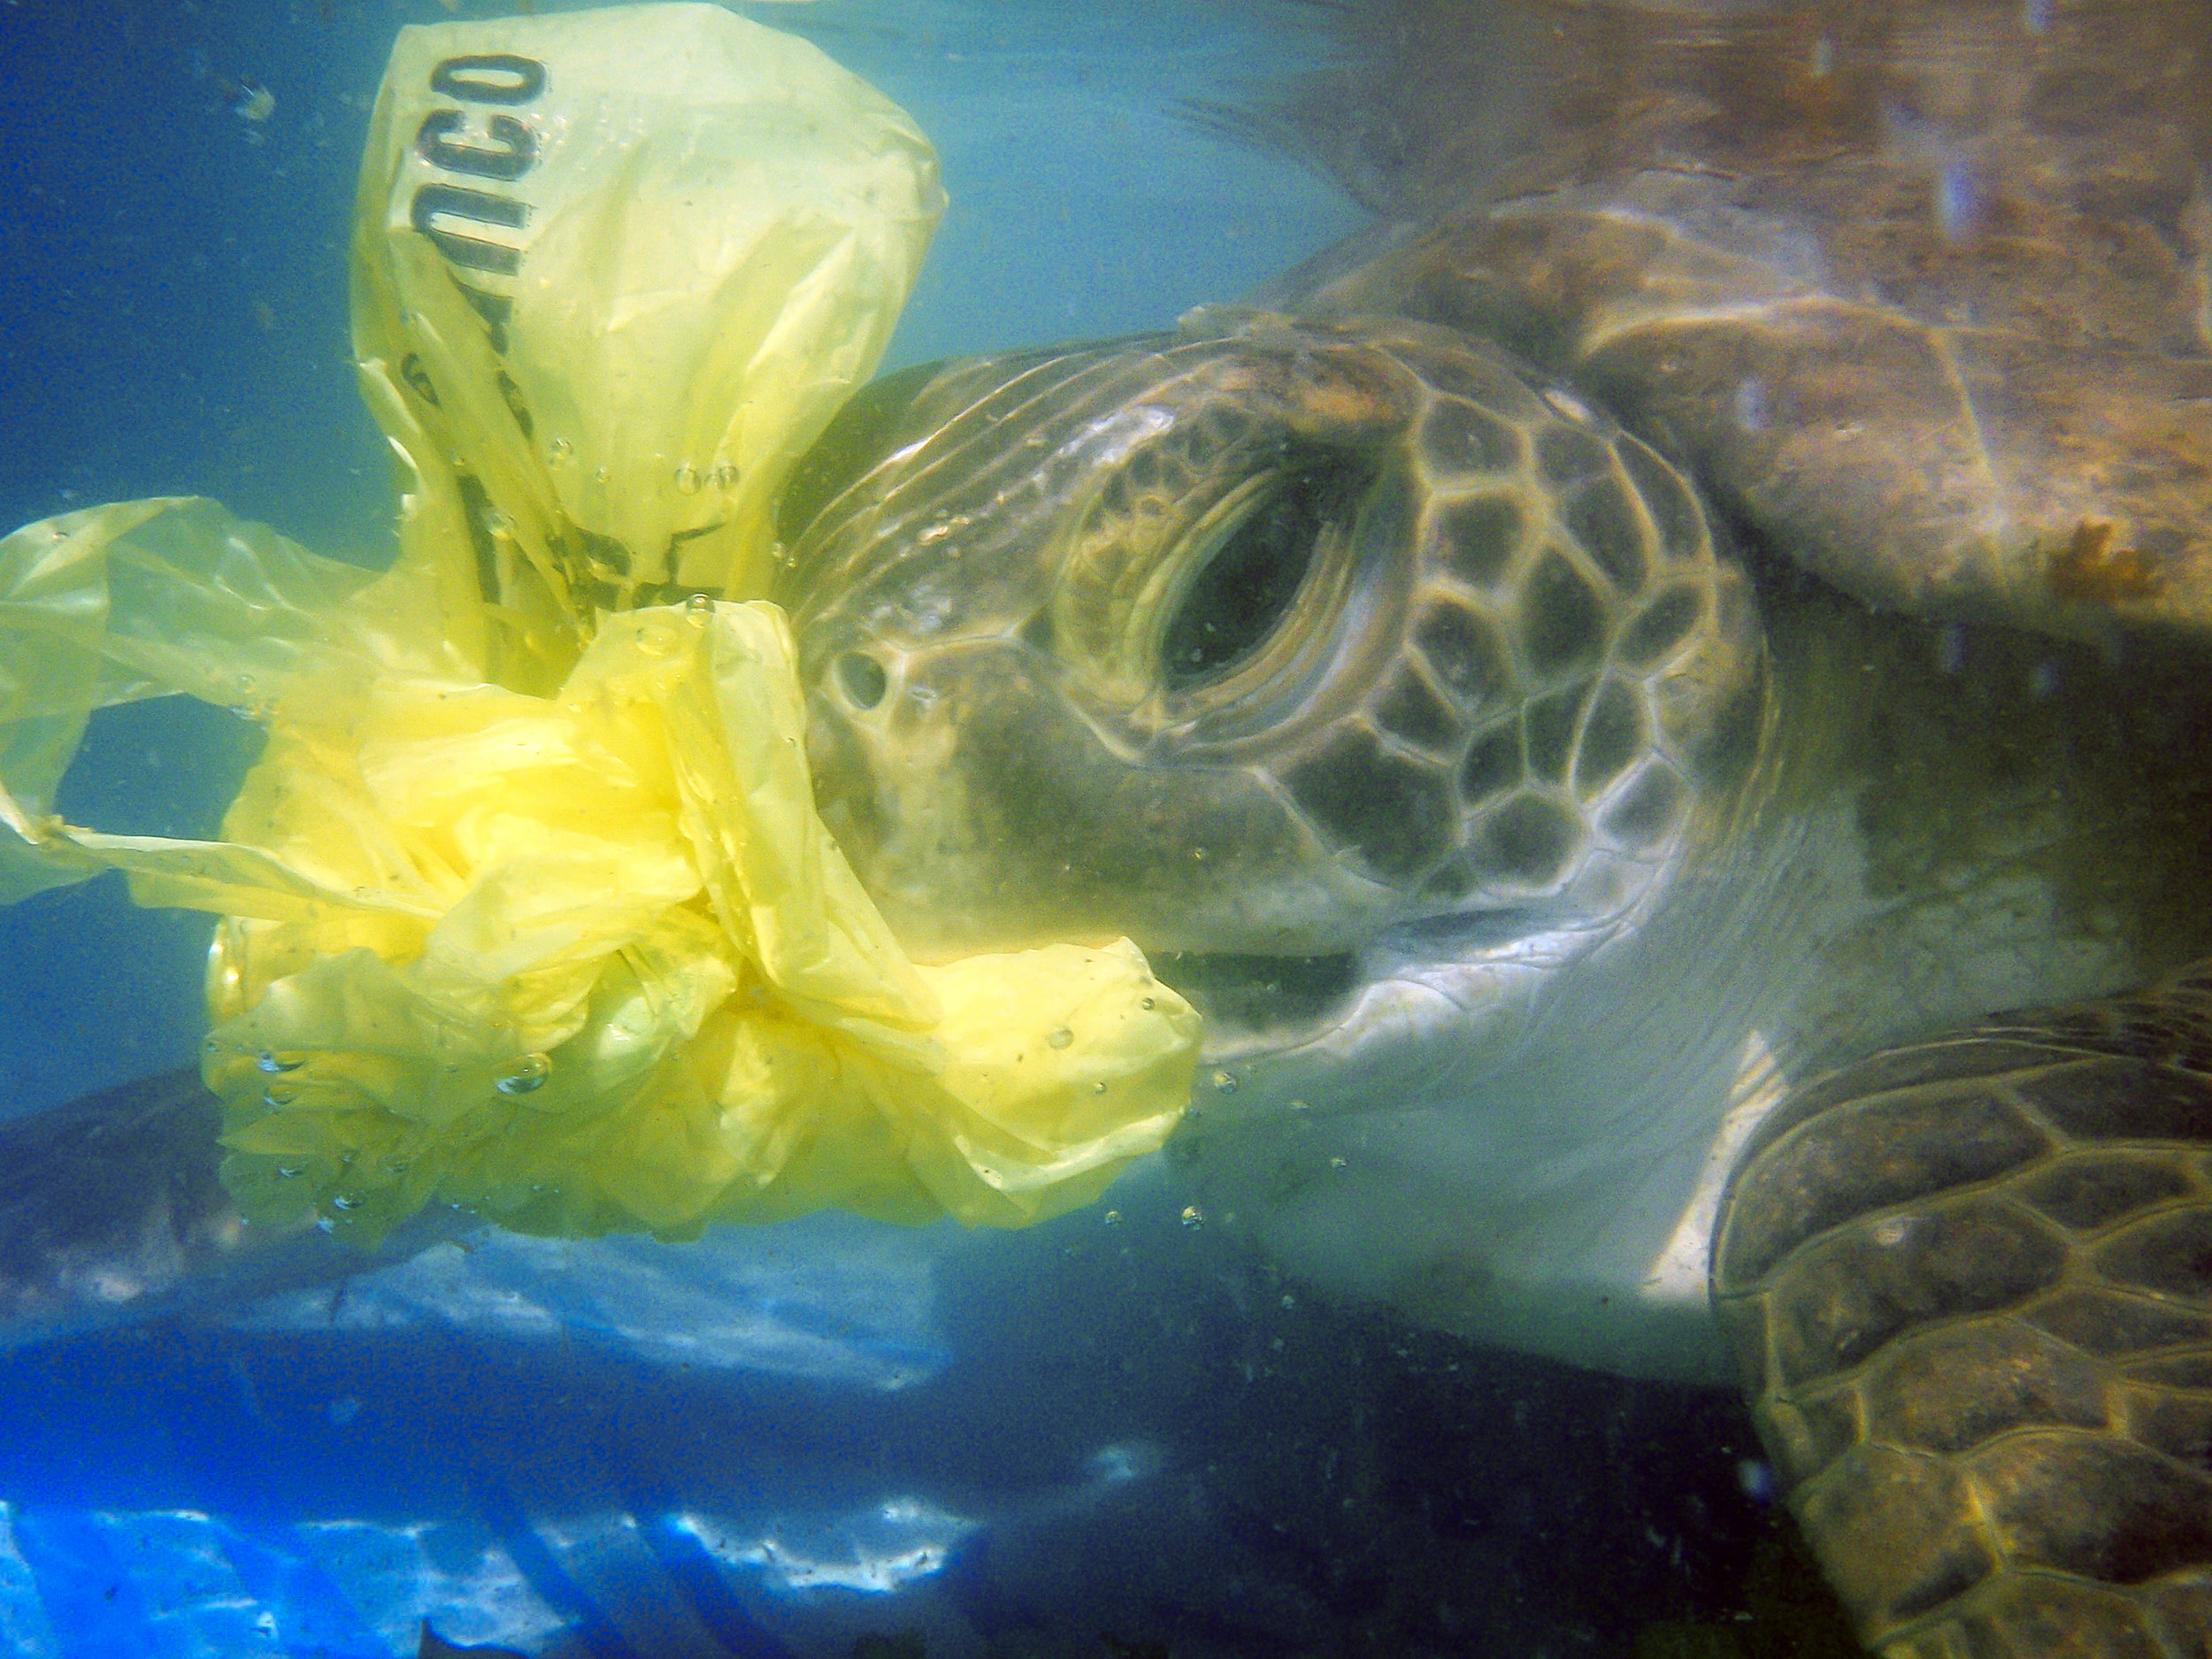 Plastic ingestion is a big and growing problem for sea turtles. © Karumbé